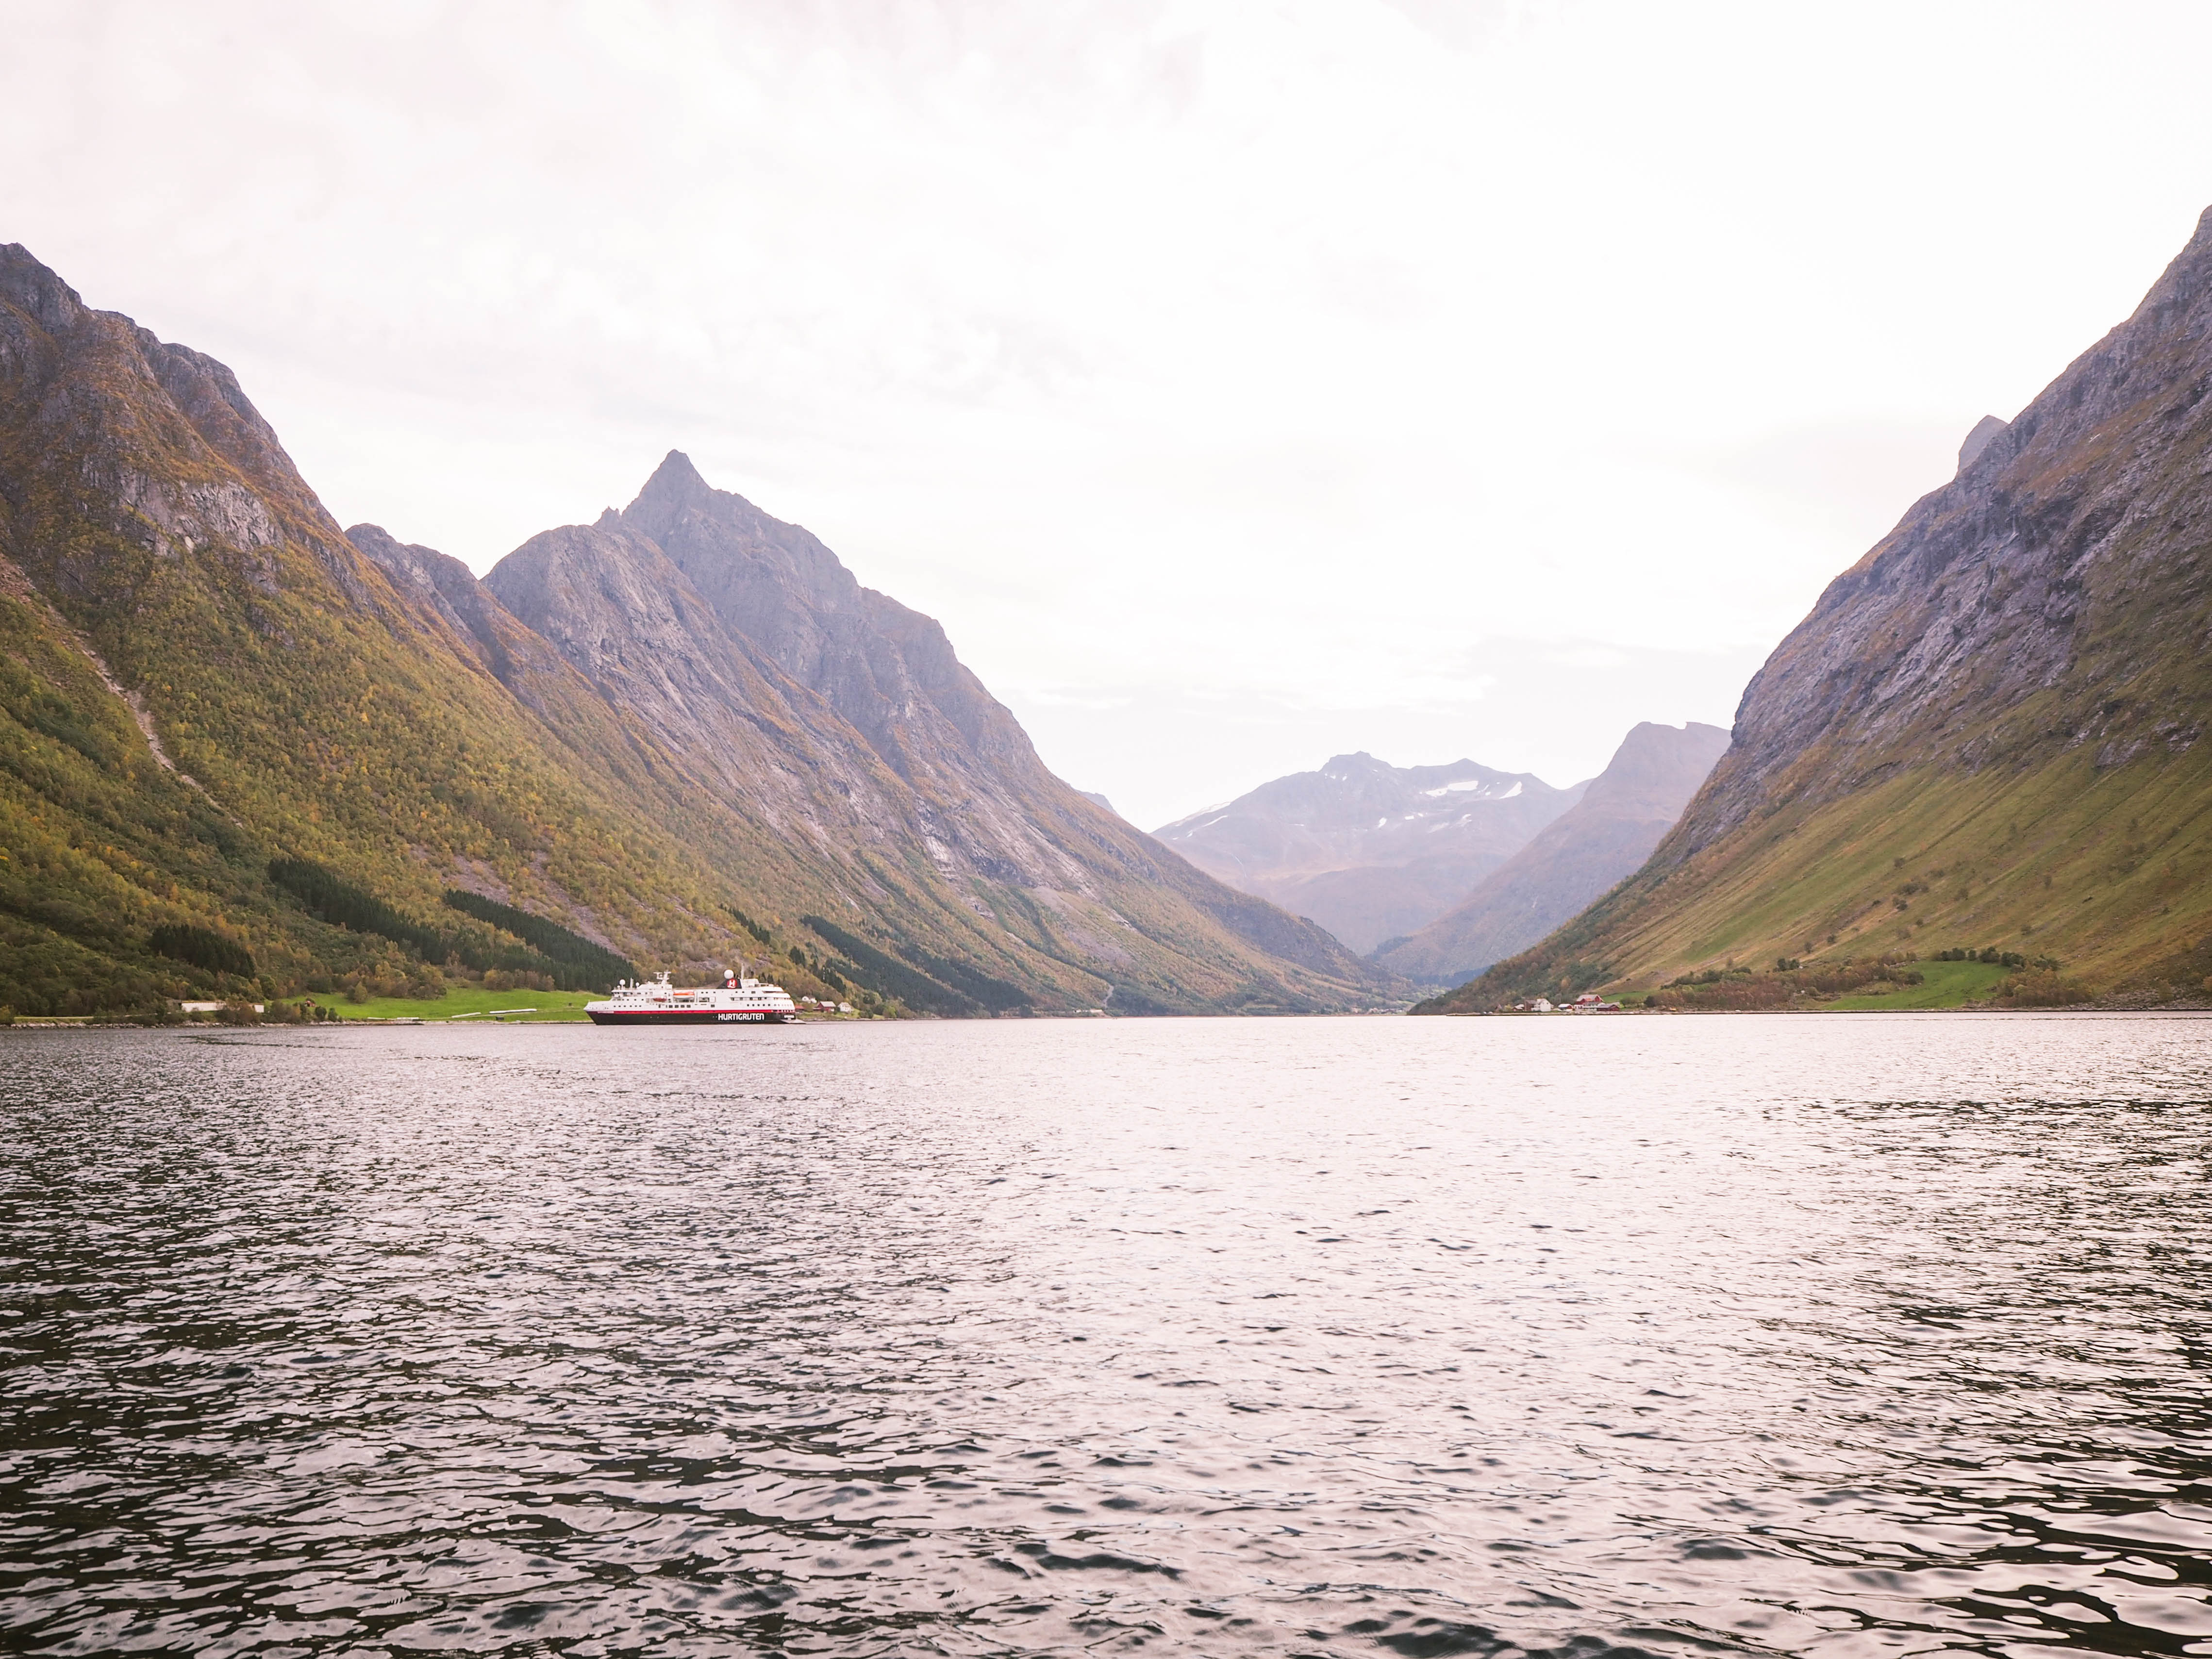 Hurtigruten and the Hjørundfjord